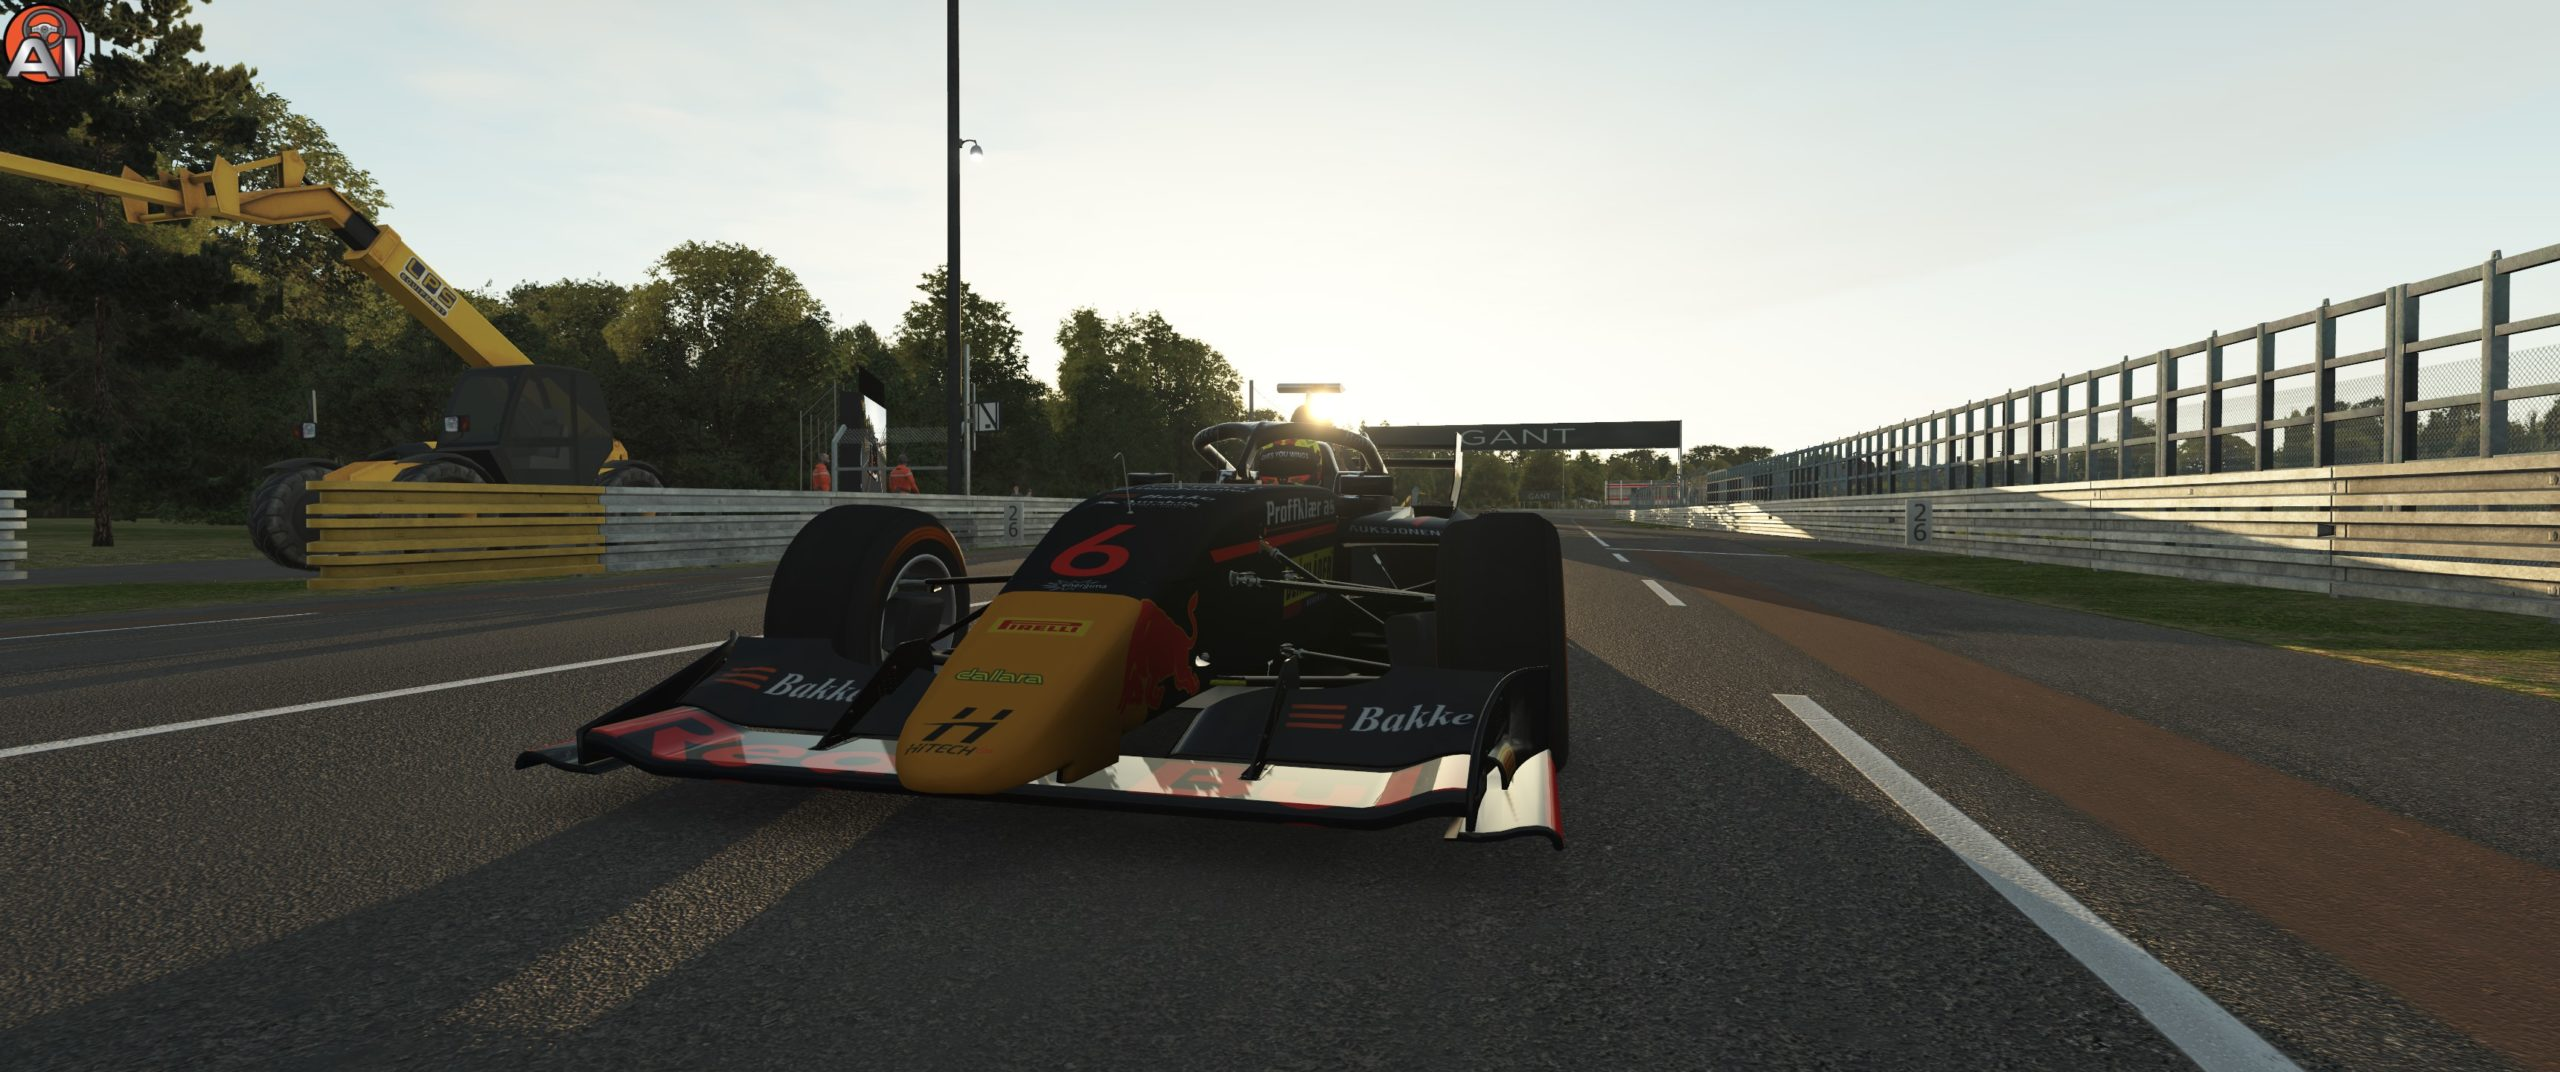 20200610182342_1-scaled SMMG Formula 3 2020 1.0 for rFactor 2 – Released